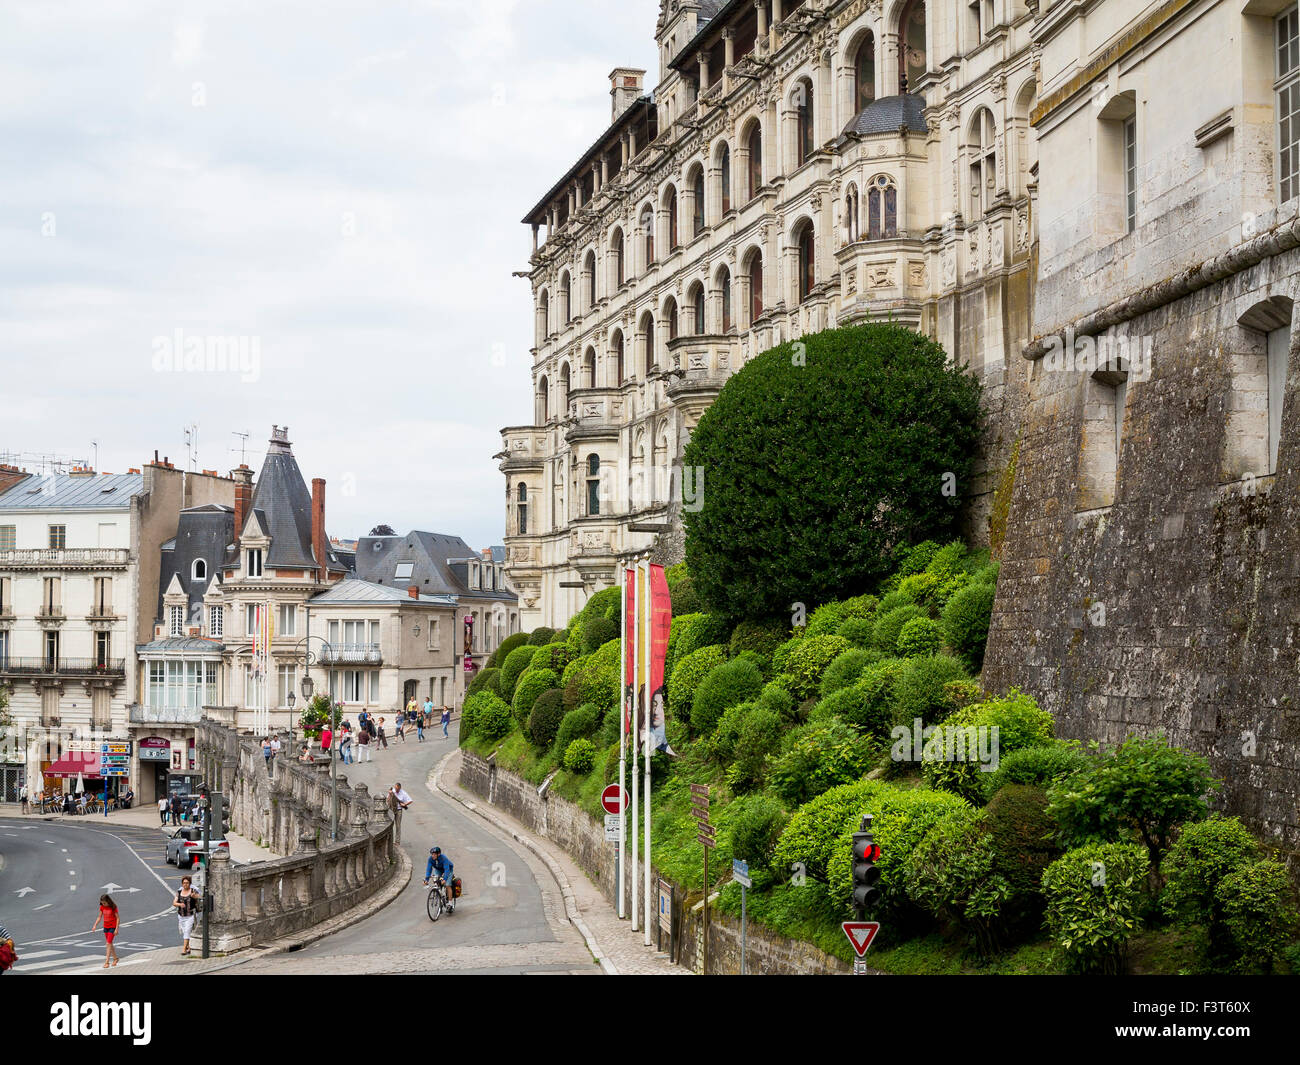 The architecture of the town centre of  the Loire Valley town of Blois and Chateau de Blois - Stock Image